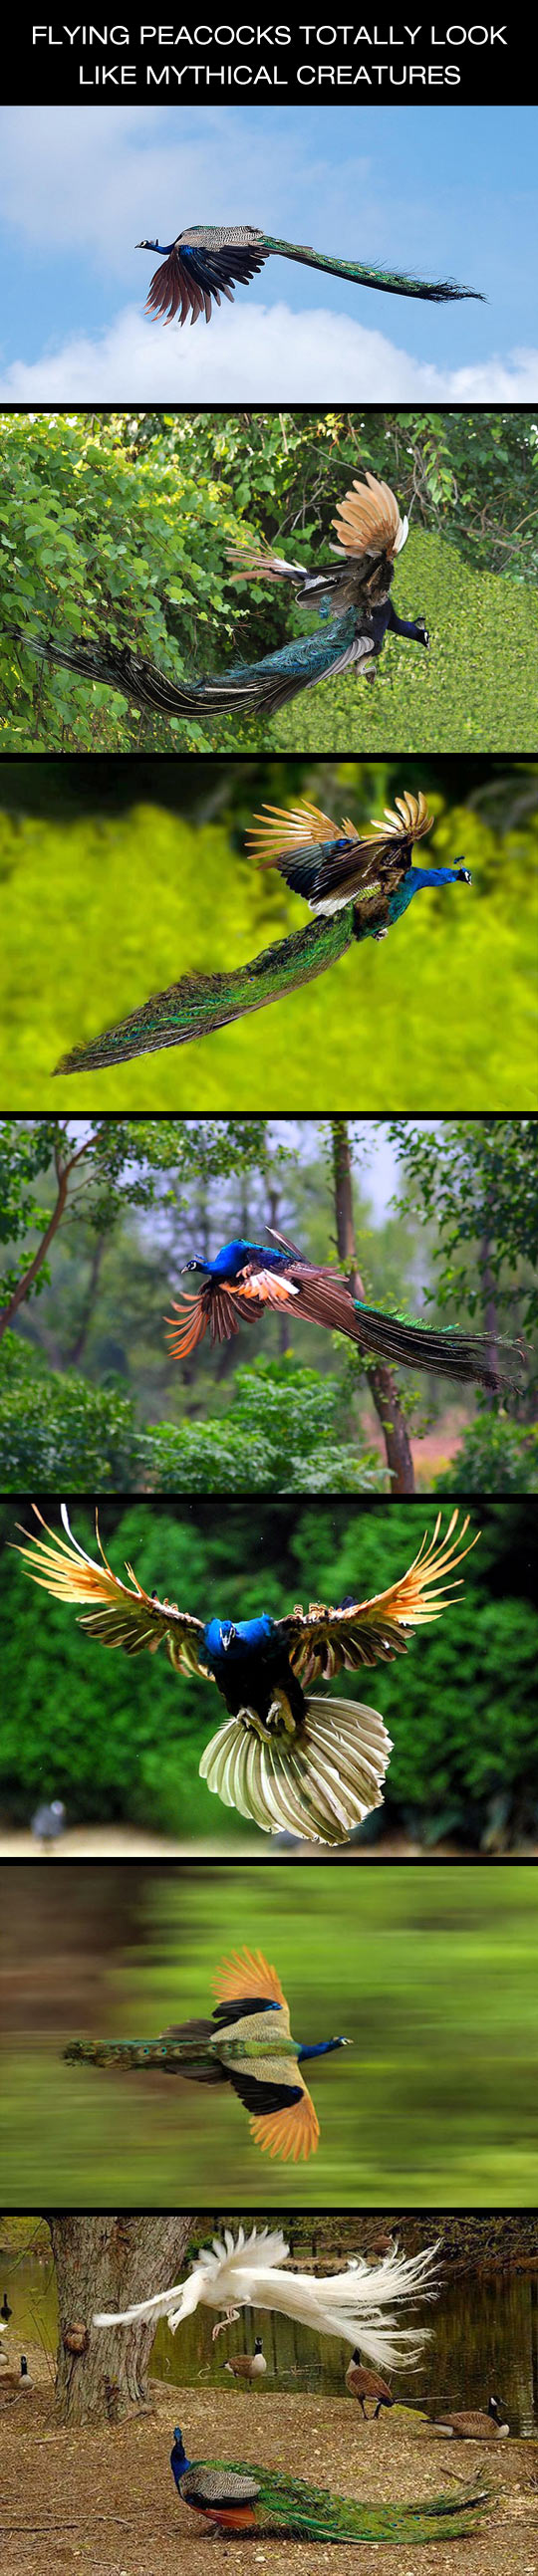 funny-flying-peacock-free-wild-majestic